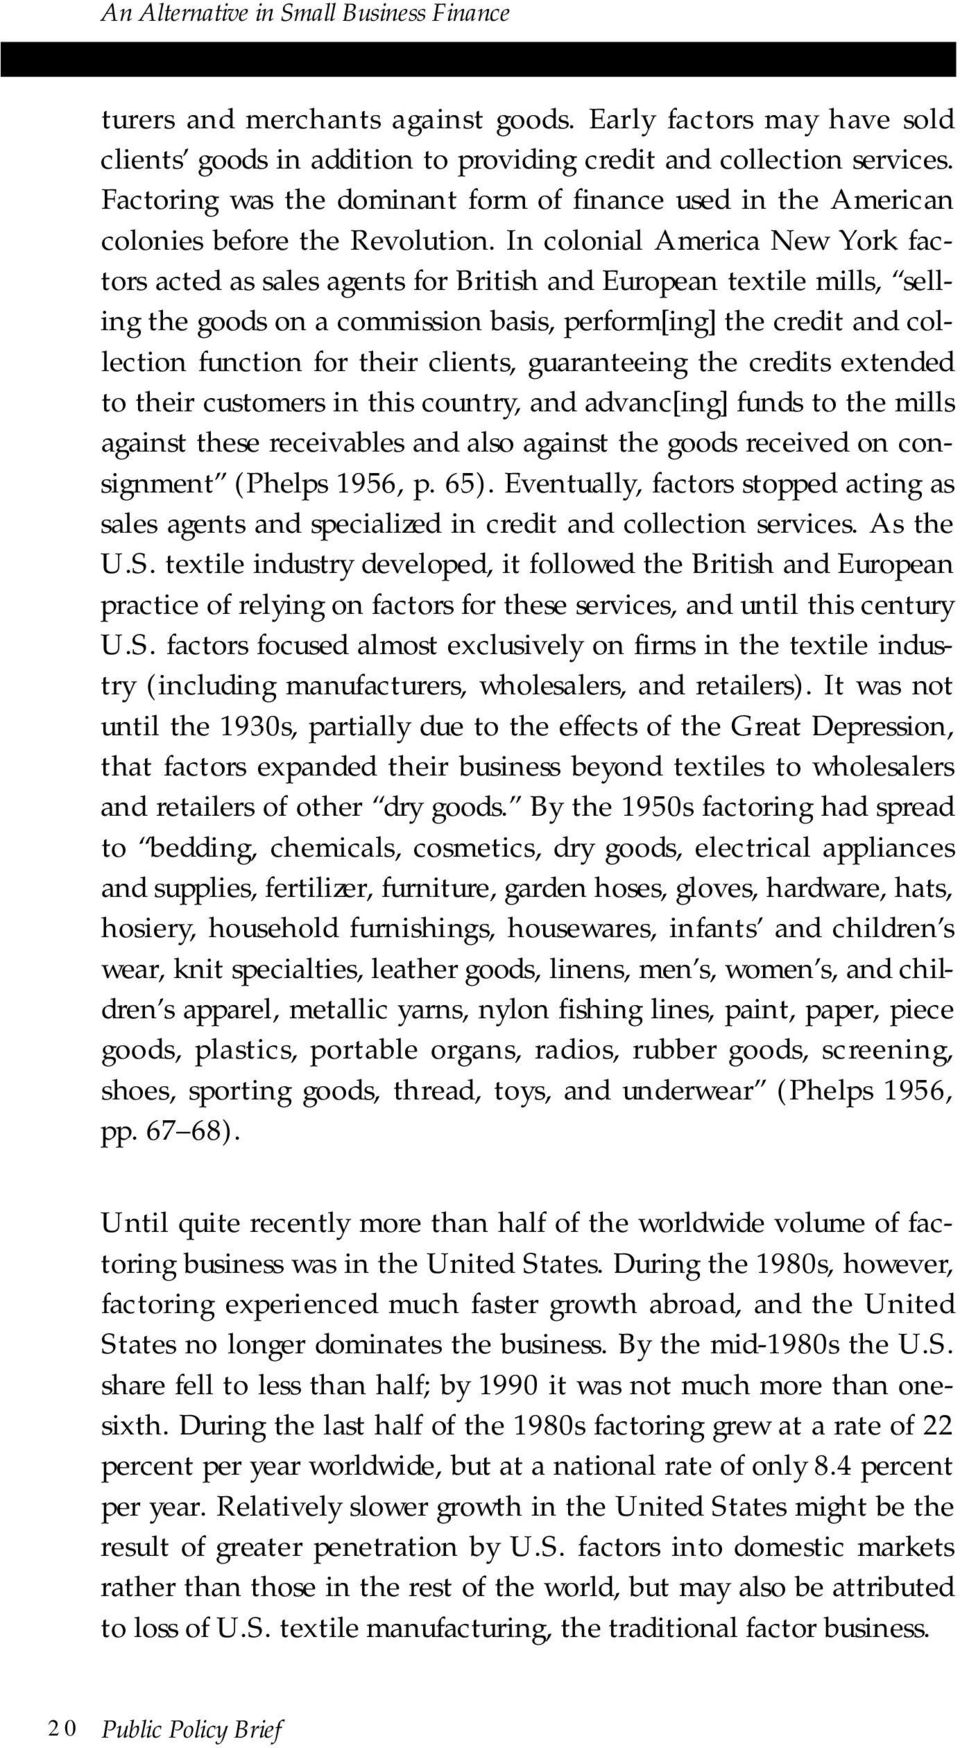 In colonial America New York factors acted as sales agents for British and European textile mills, selling the goods on a commission basis, perform[ing] the credit and collection function for their